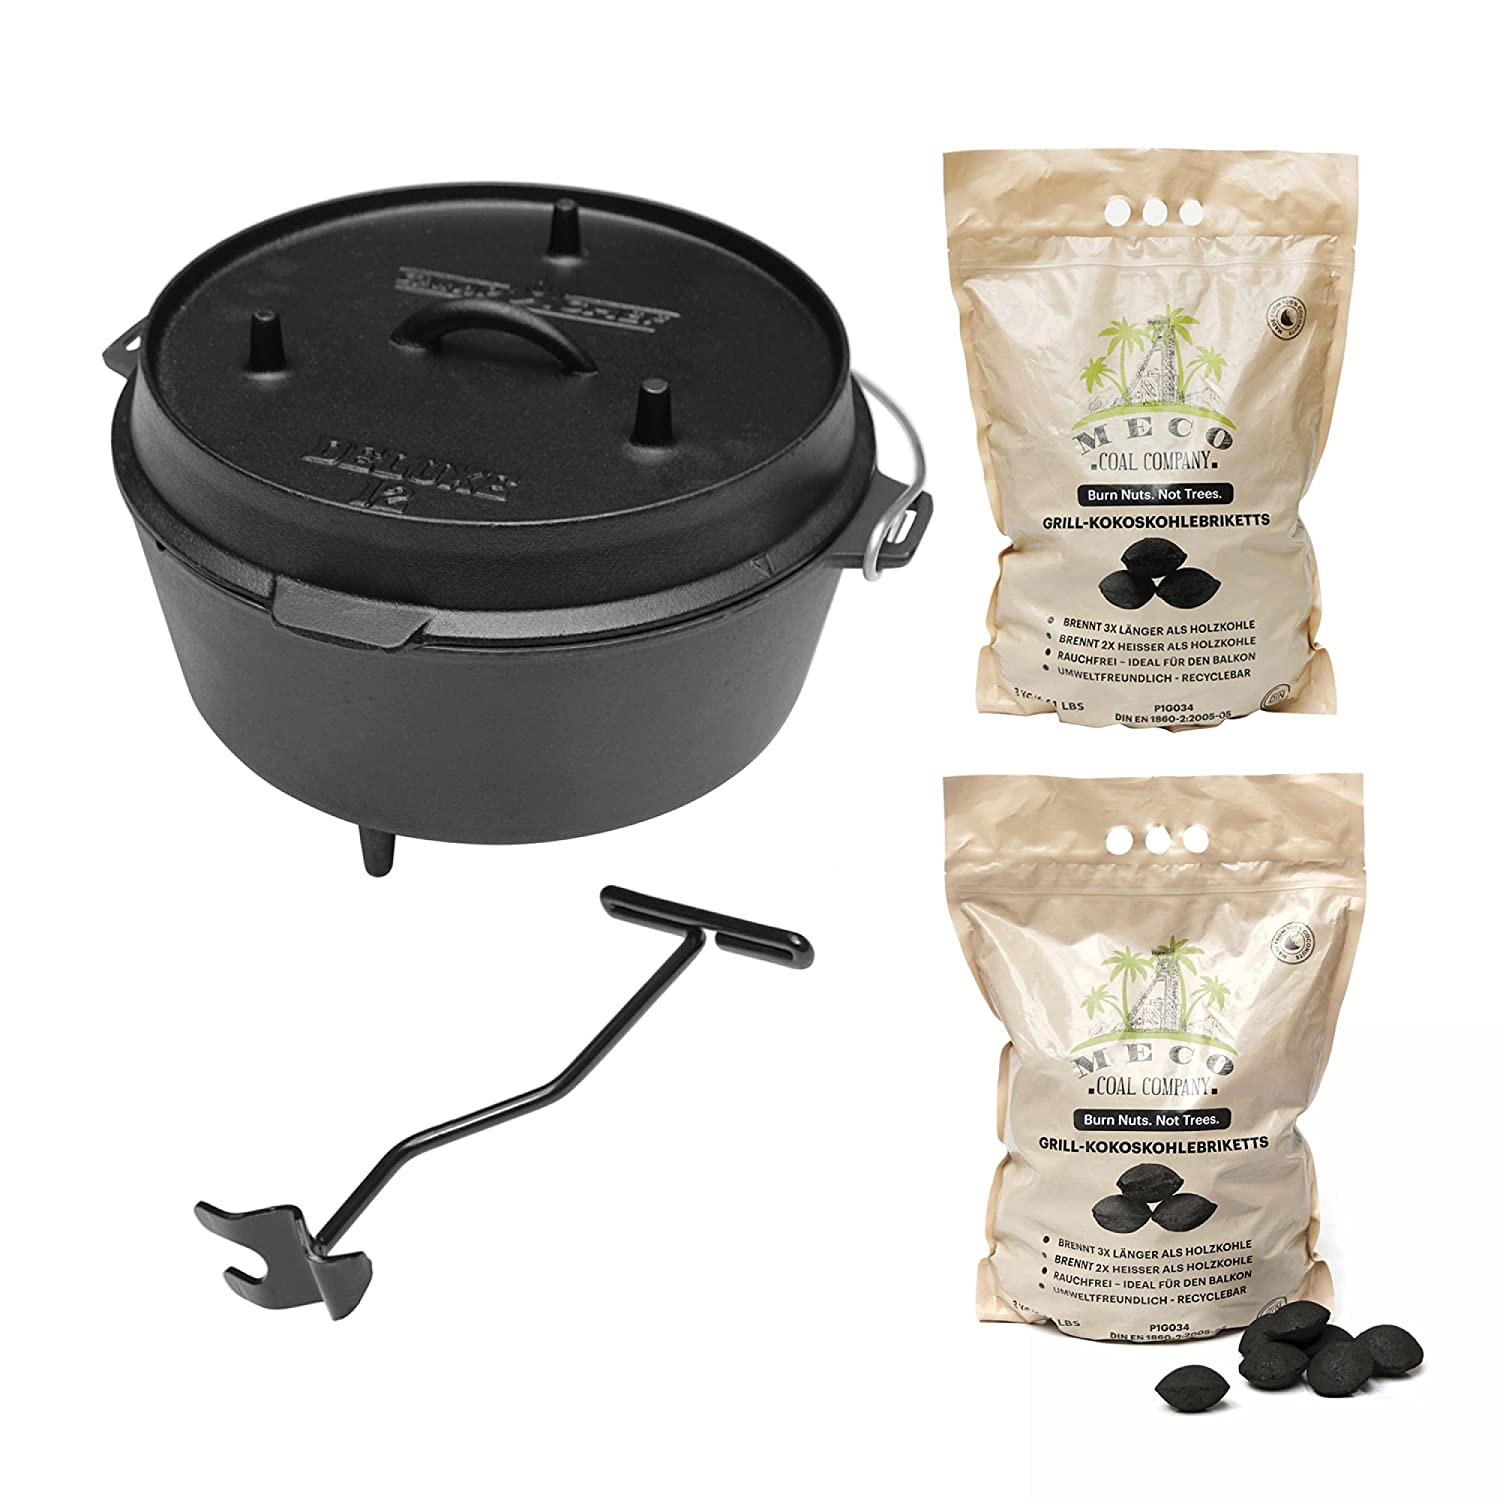 camp chef KS0861 Camp Chef Deluxe Dutch Oven DO-12 + MECO Grill-Kokoskohlebriketts 2er-Pack